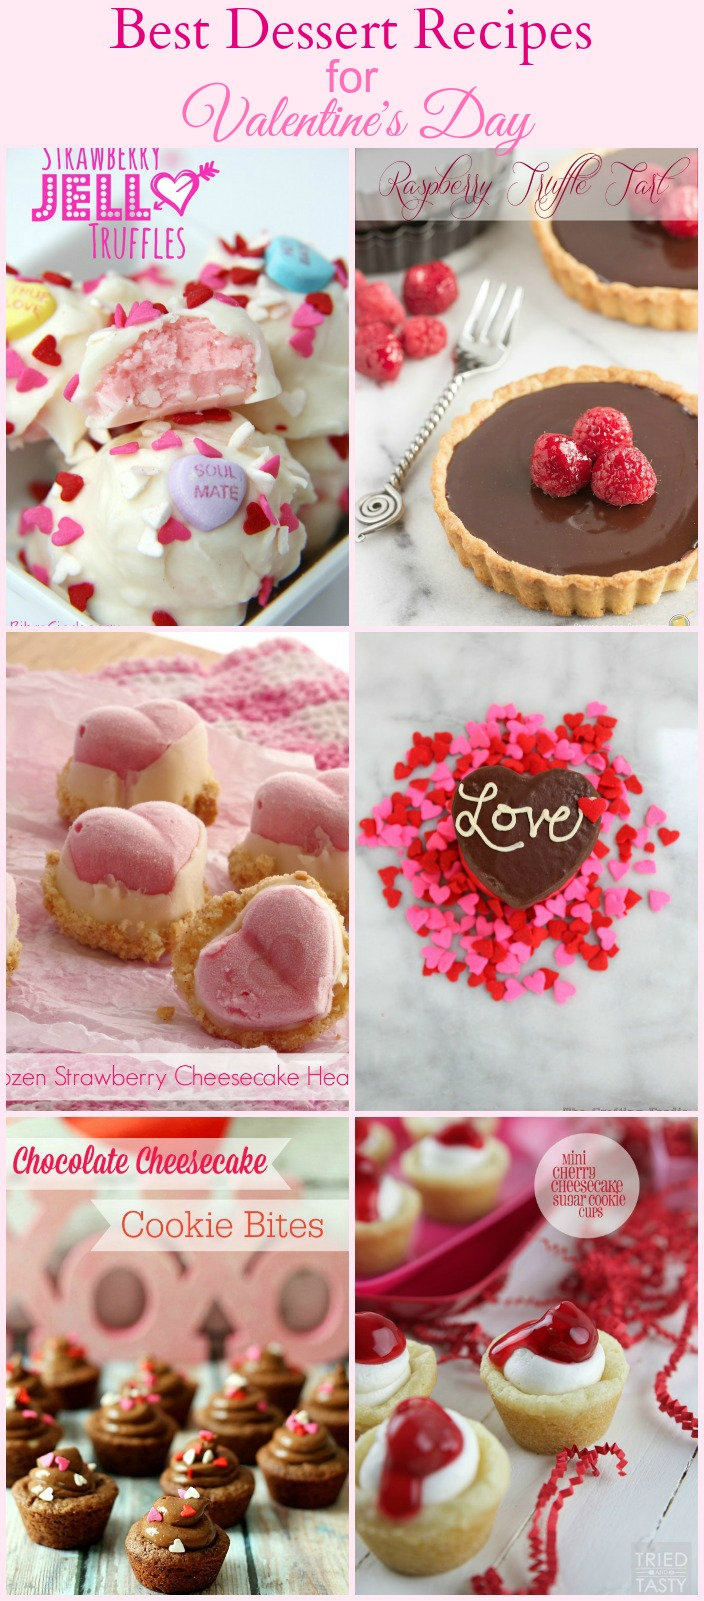 Valentine S Day Cake Recipes Pictures : Best Dessert Recipes for Valentine s Day The NY Melrose ...